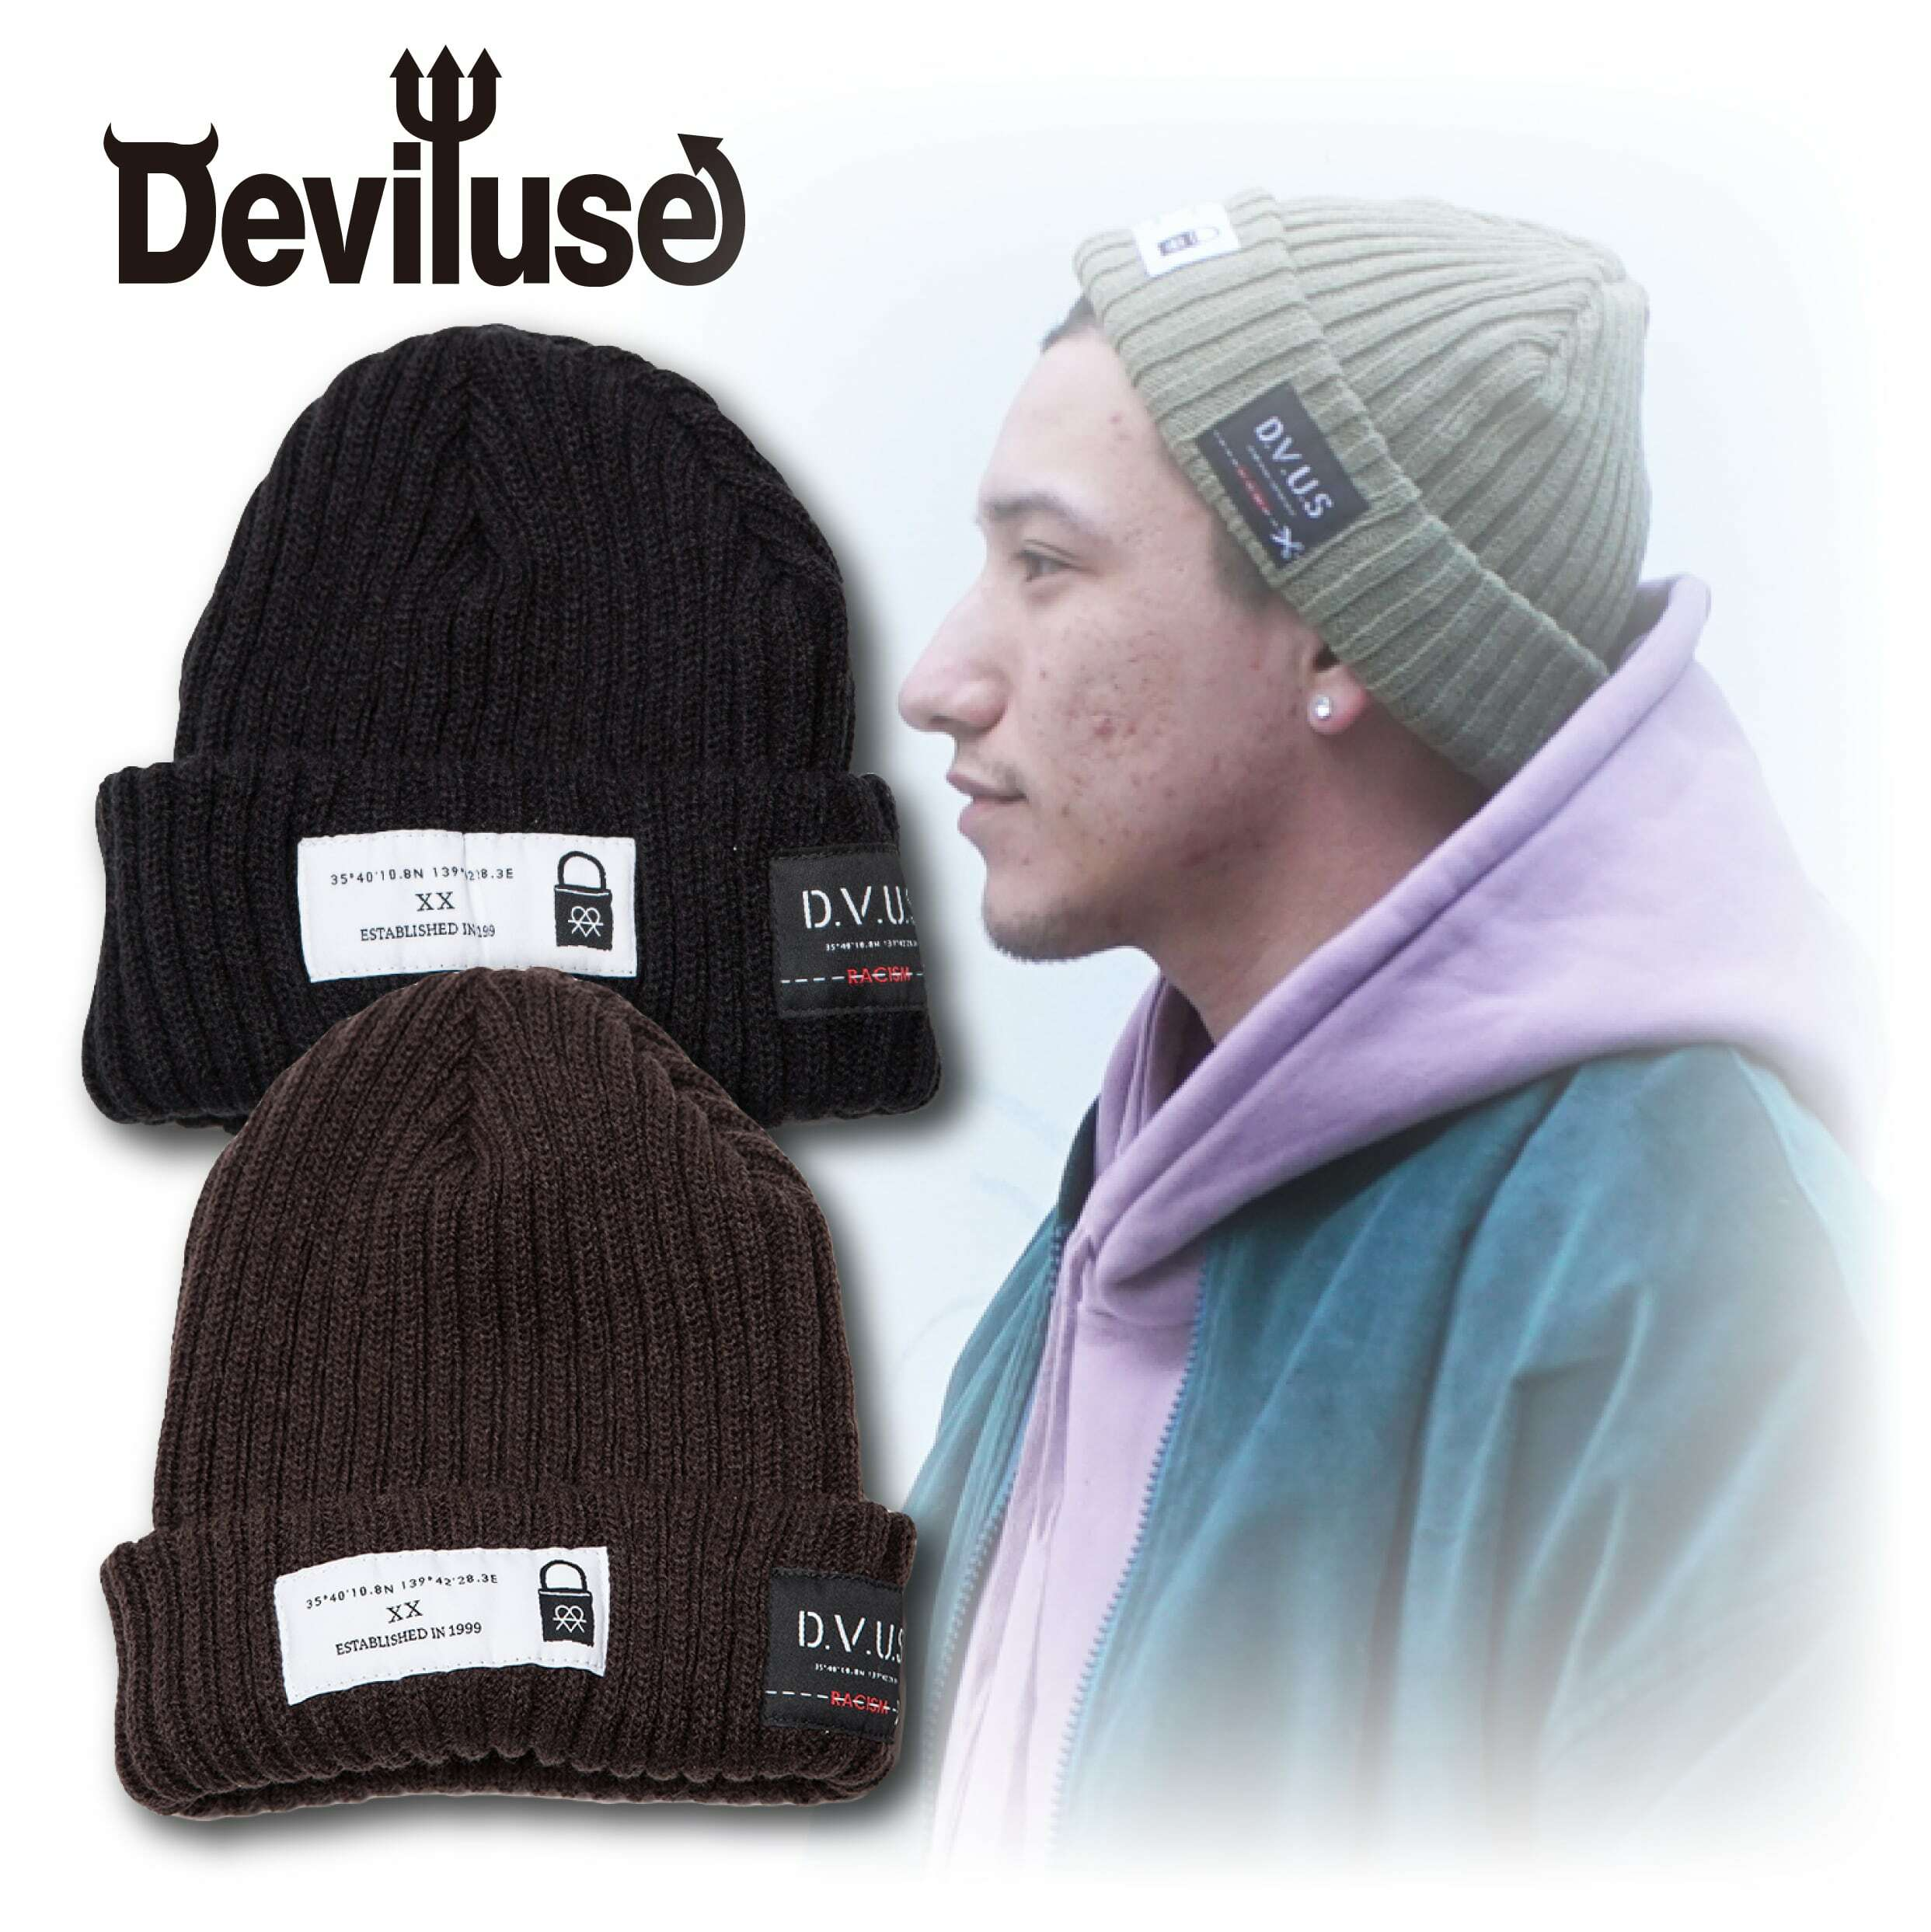 Deviluse(デビルユース) | Patch Beanie